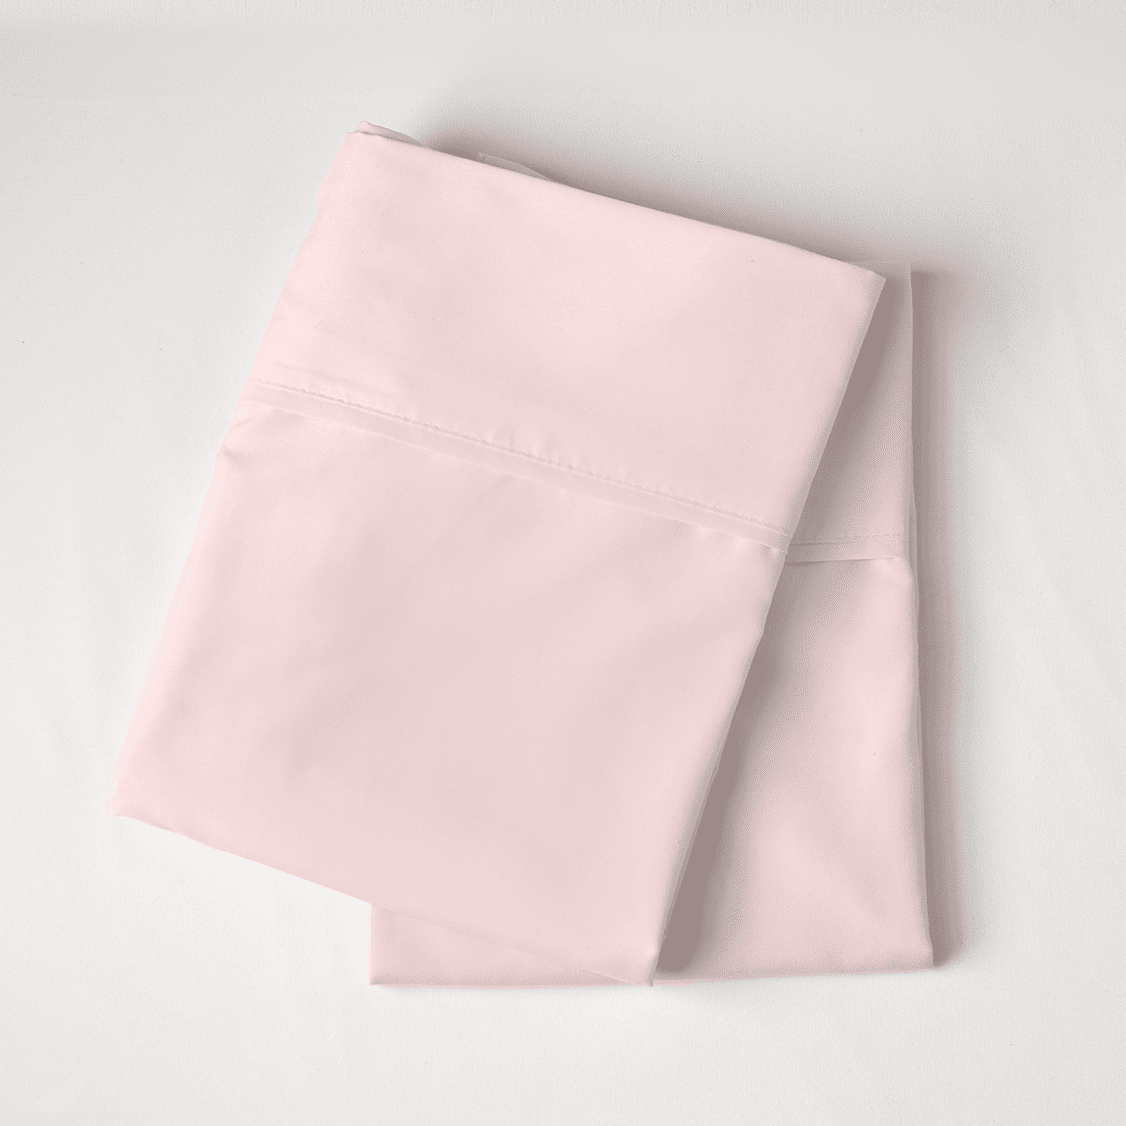 Cotton Candy Pink Pillowcase Set